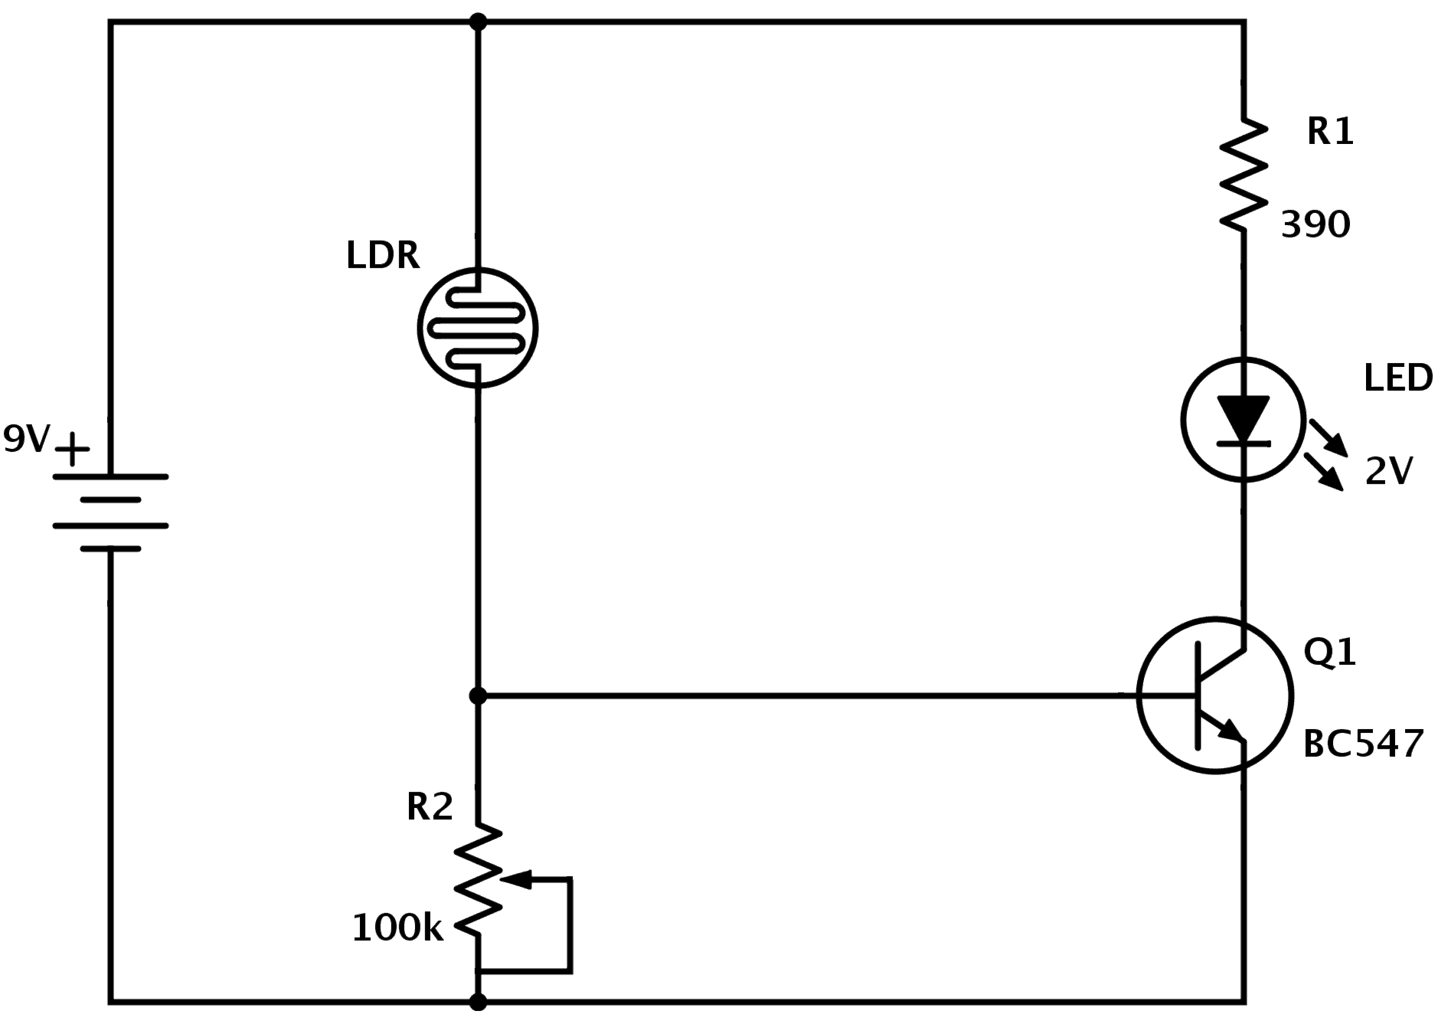 Ldr Circuit Diagram Build Electronic Circuits Wiring Standards Product Technical Queries Reference